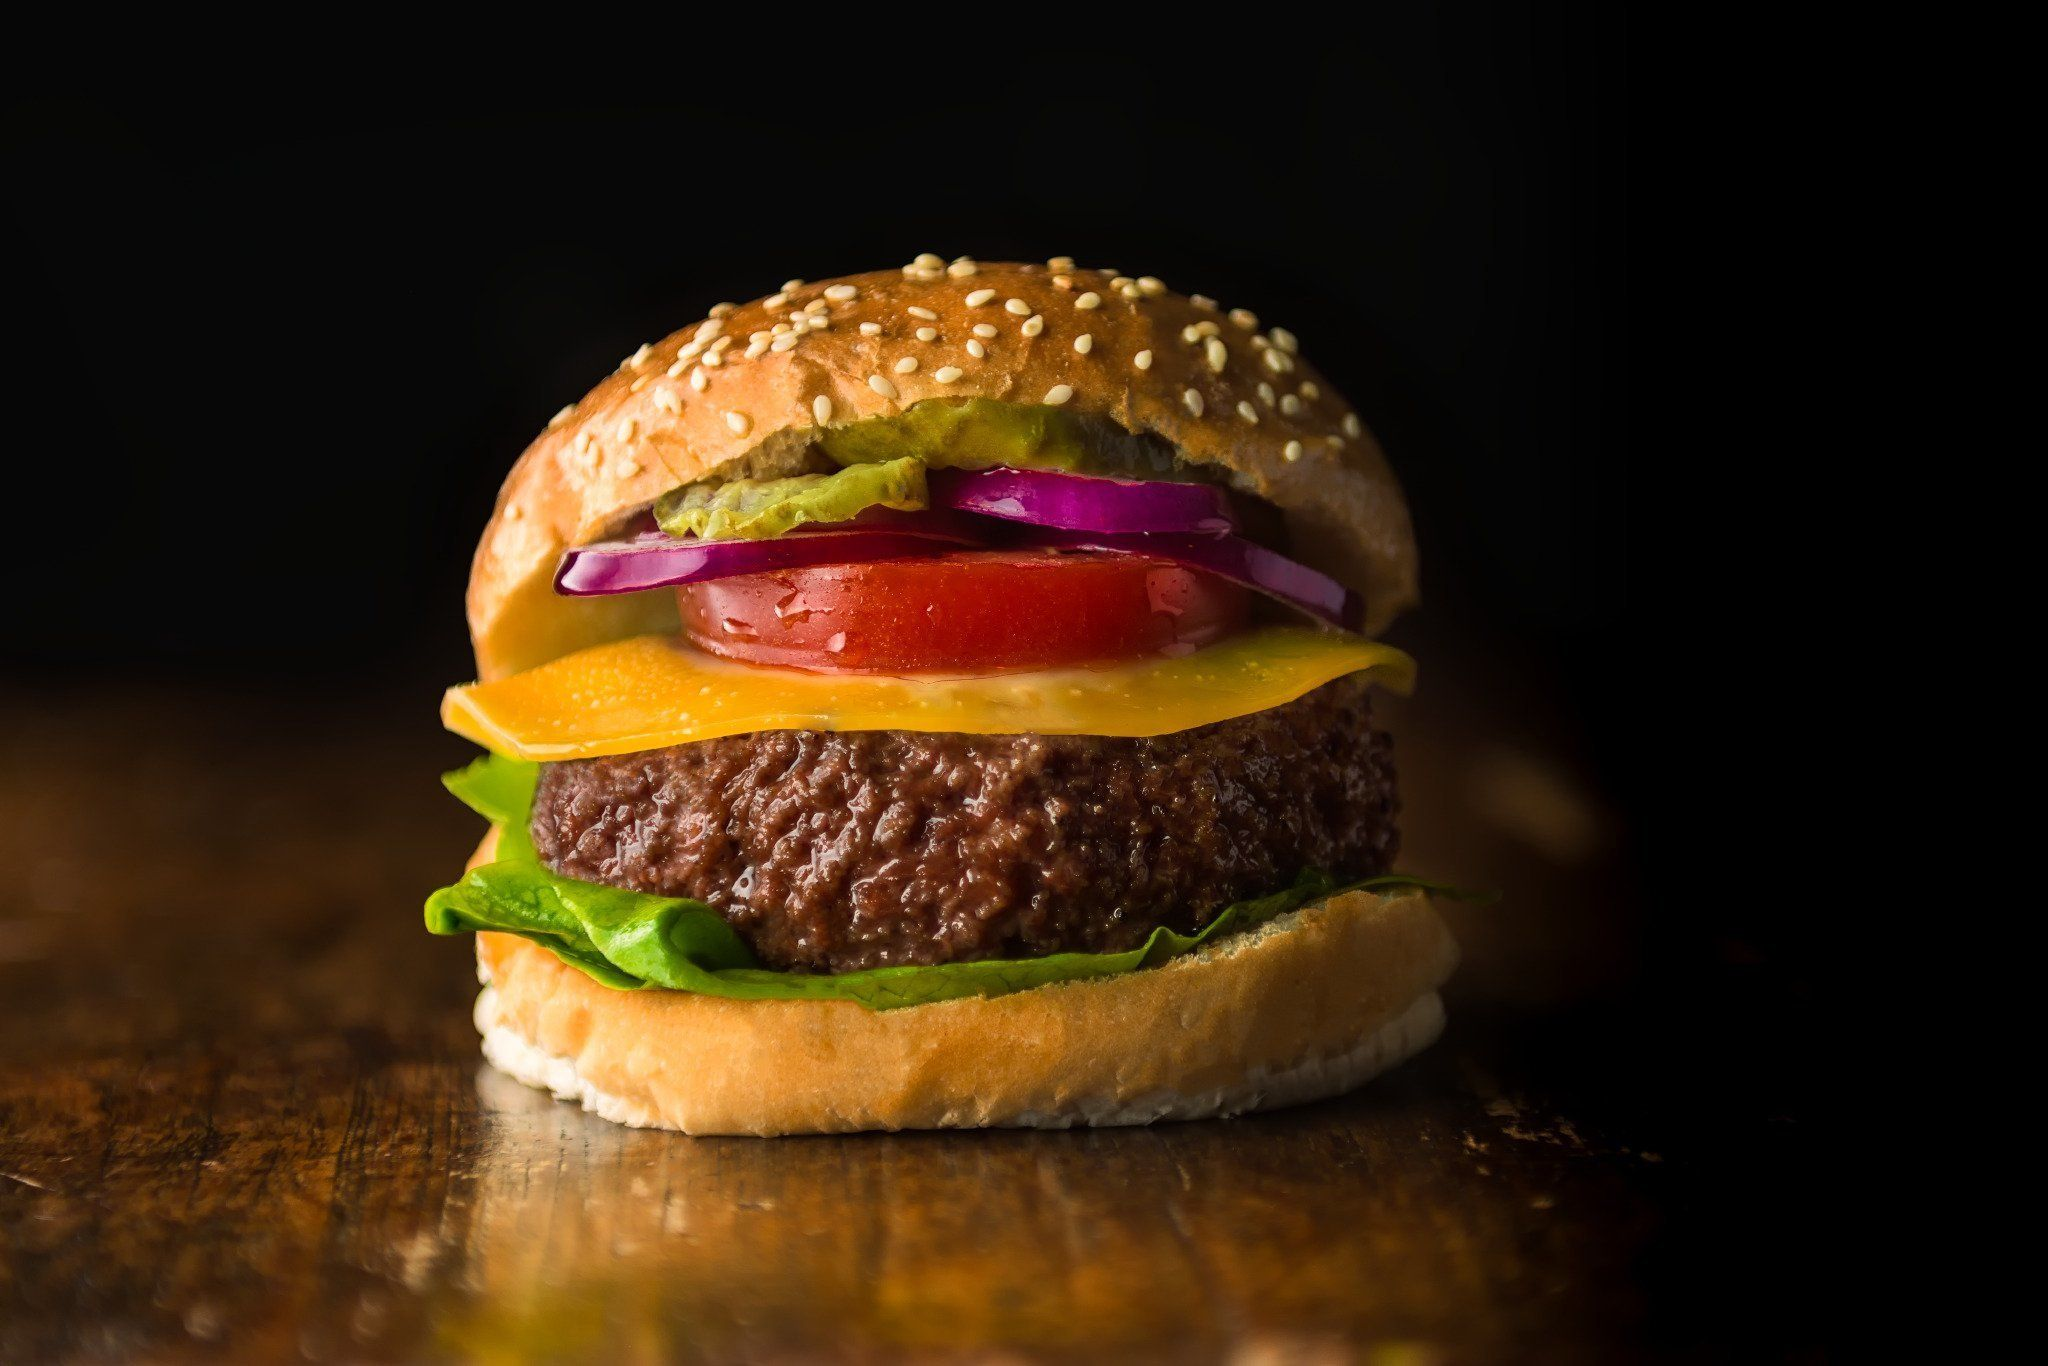 Lab-Grown Burgers Could Be In Restaurants By